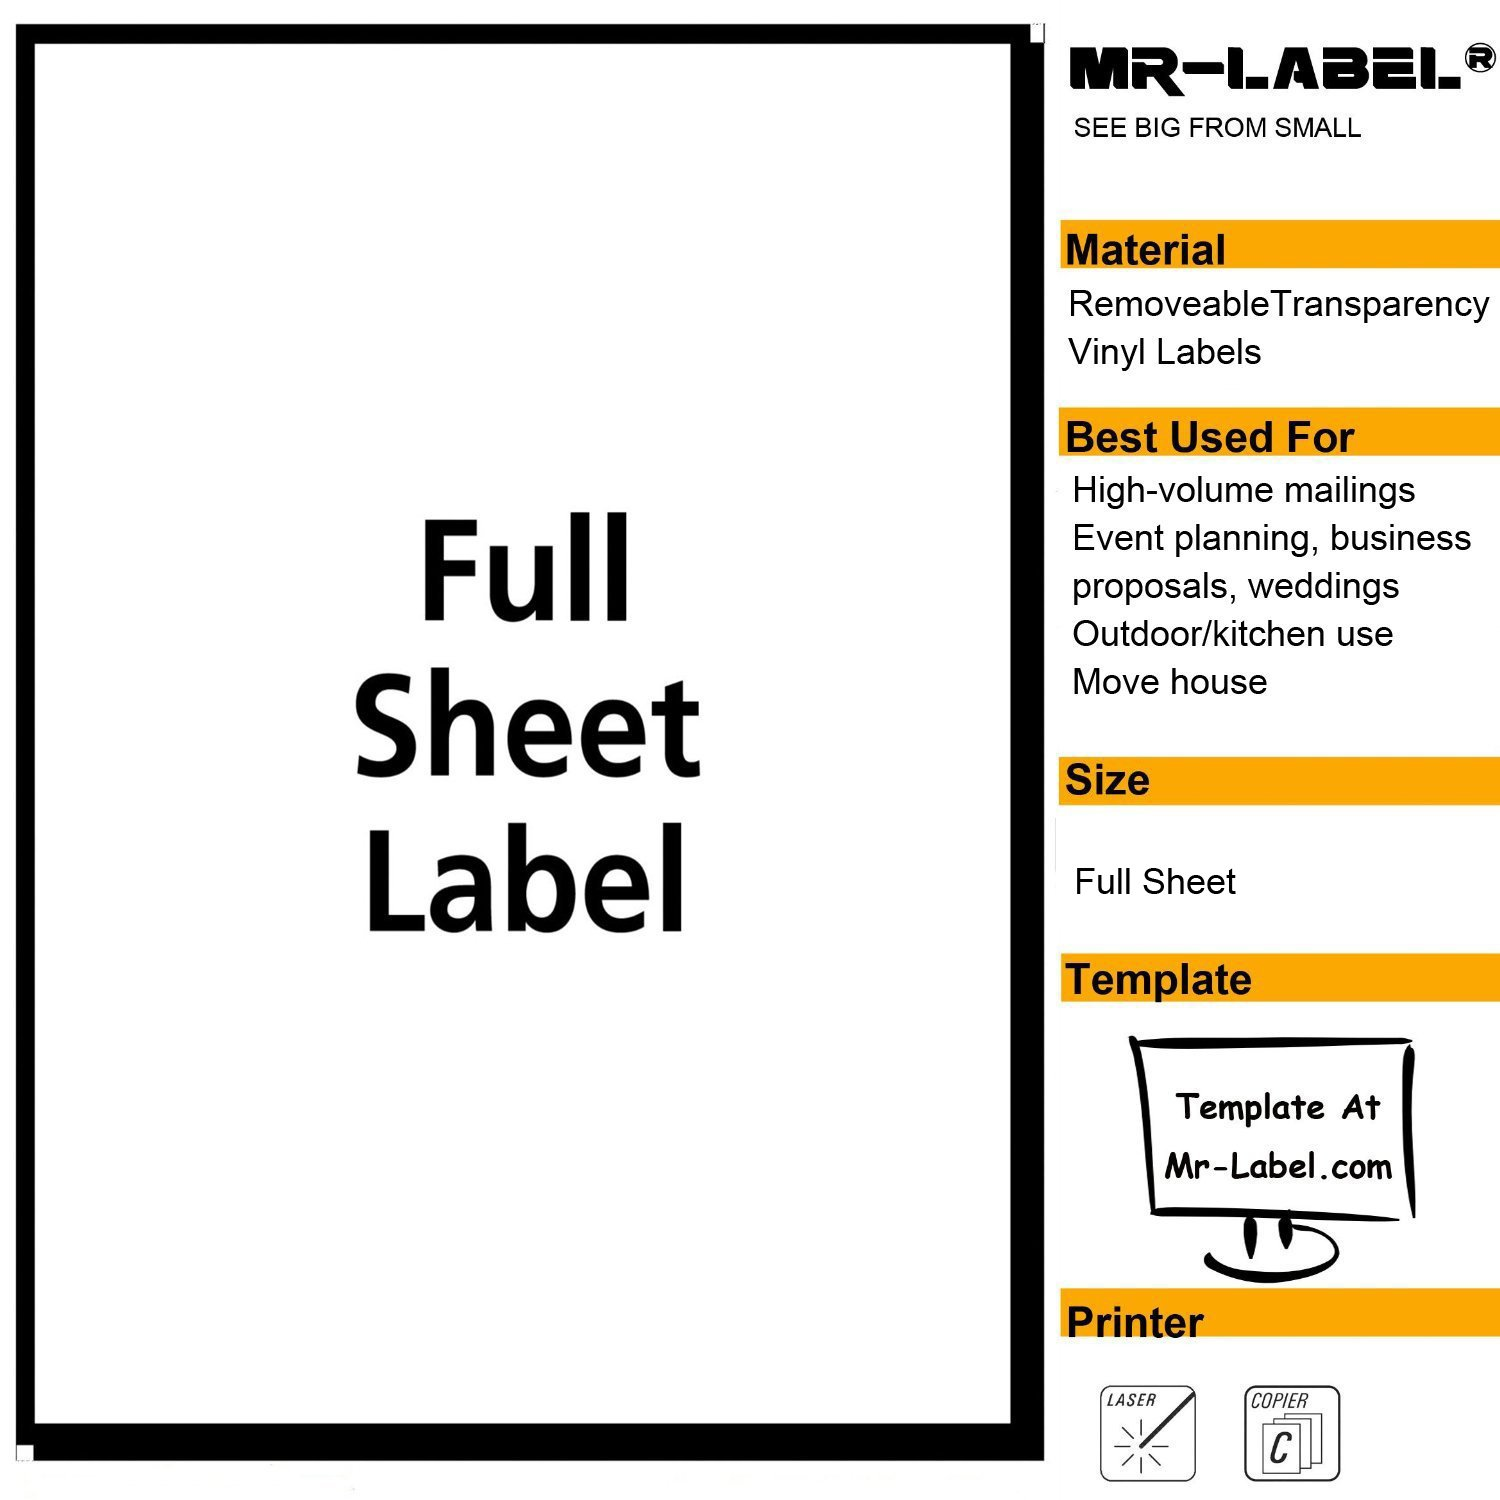 MR-LABEL Clear Full Letter Sheet Removable Adhesive Labels –Transparent Tear-Resistant Waterproof Stickers for Kitchen Use | Manufacturing and Storage-Laser Print Only (100 Sheets)